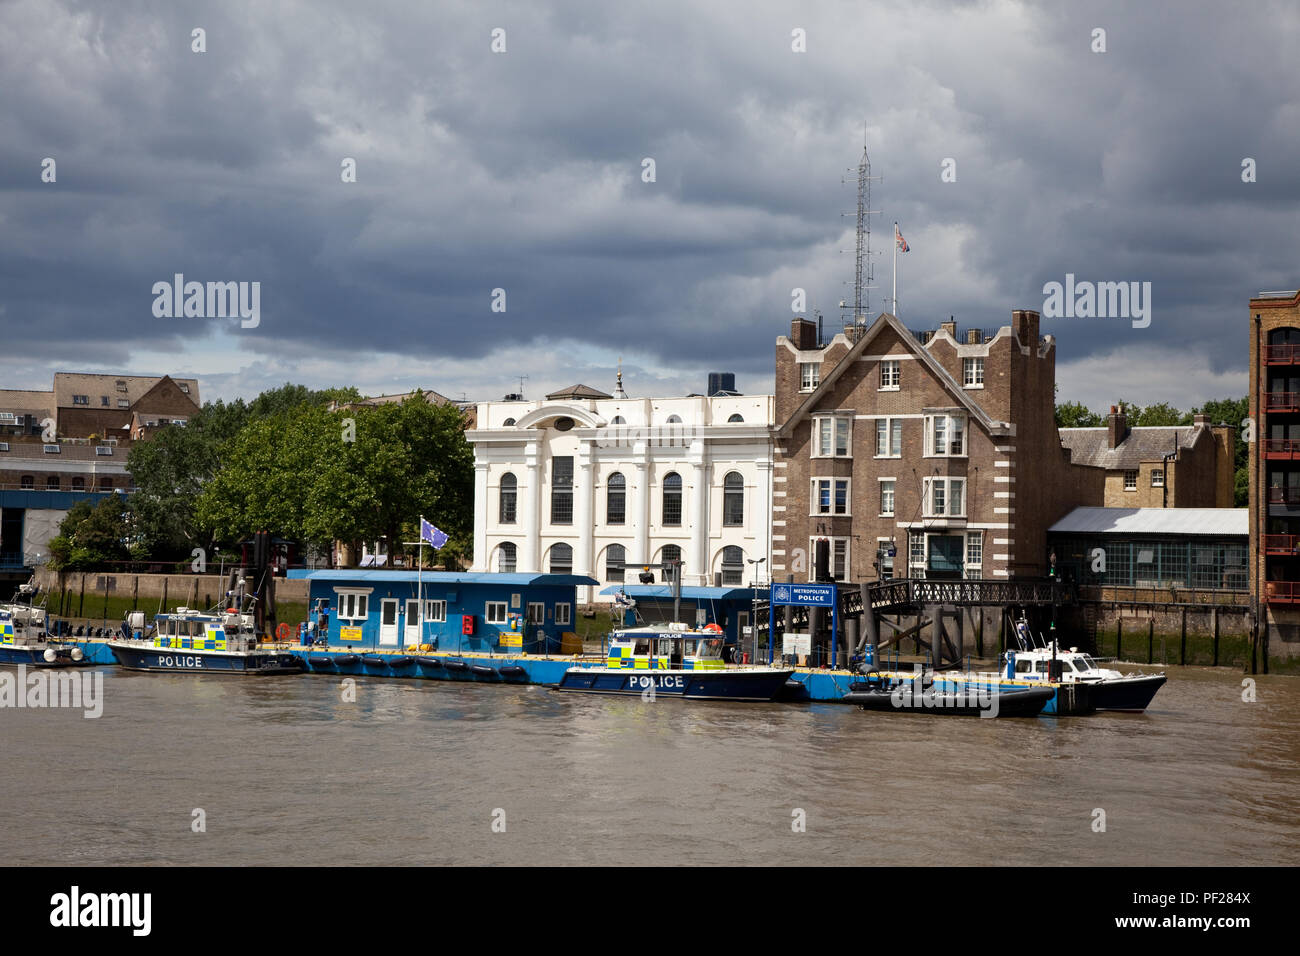 Metropolitan Police Marine Policing Unit, Wapping, London, from the River Thames with moody sky - Stock Image